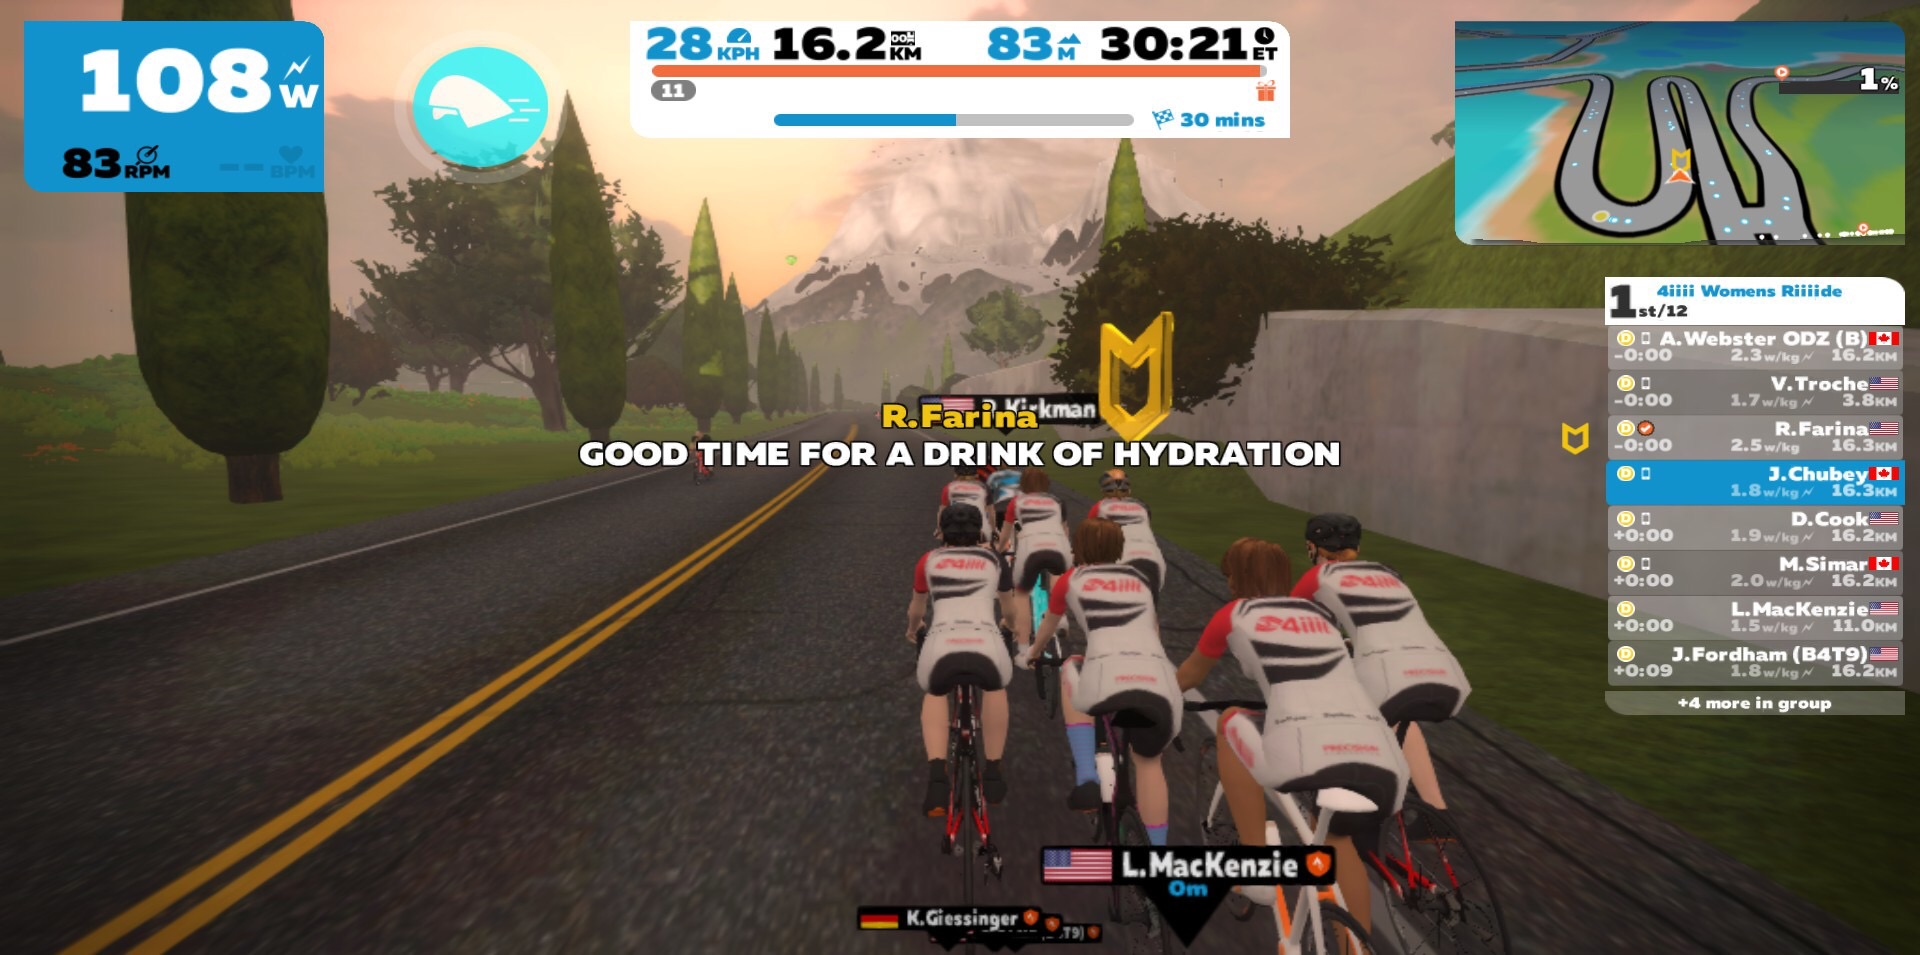 A Beginner's Guide to Zwift - 4iiii • Powermeters + heart rate